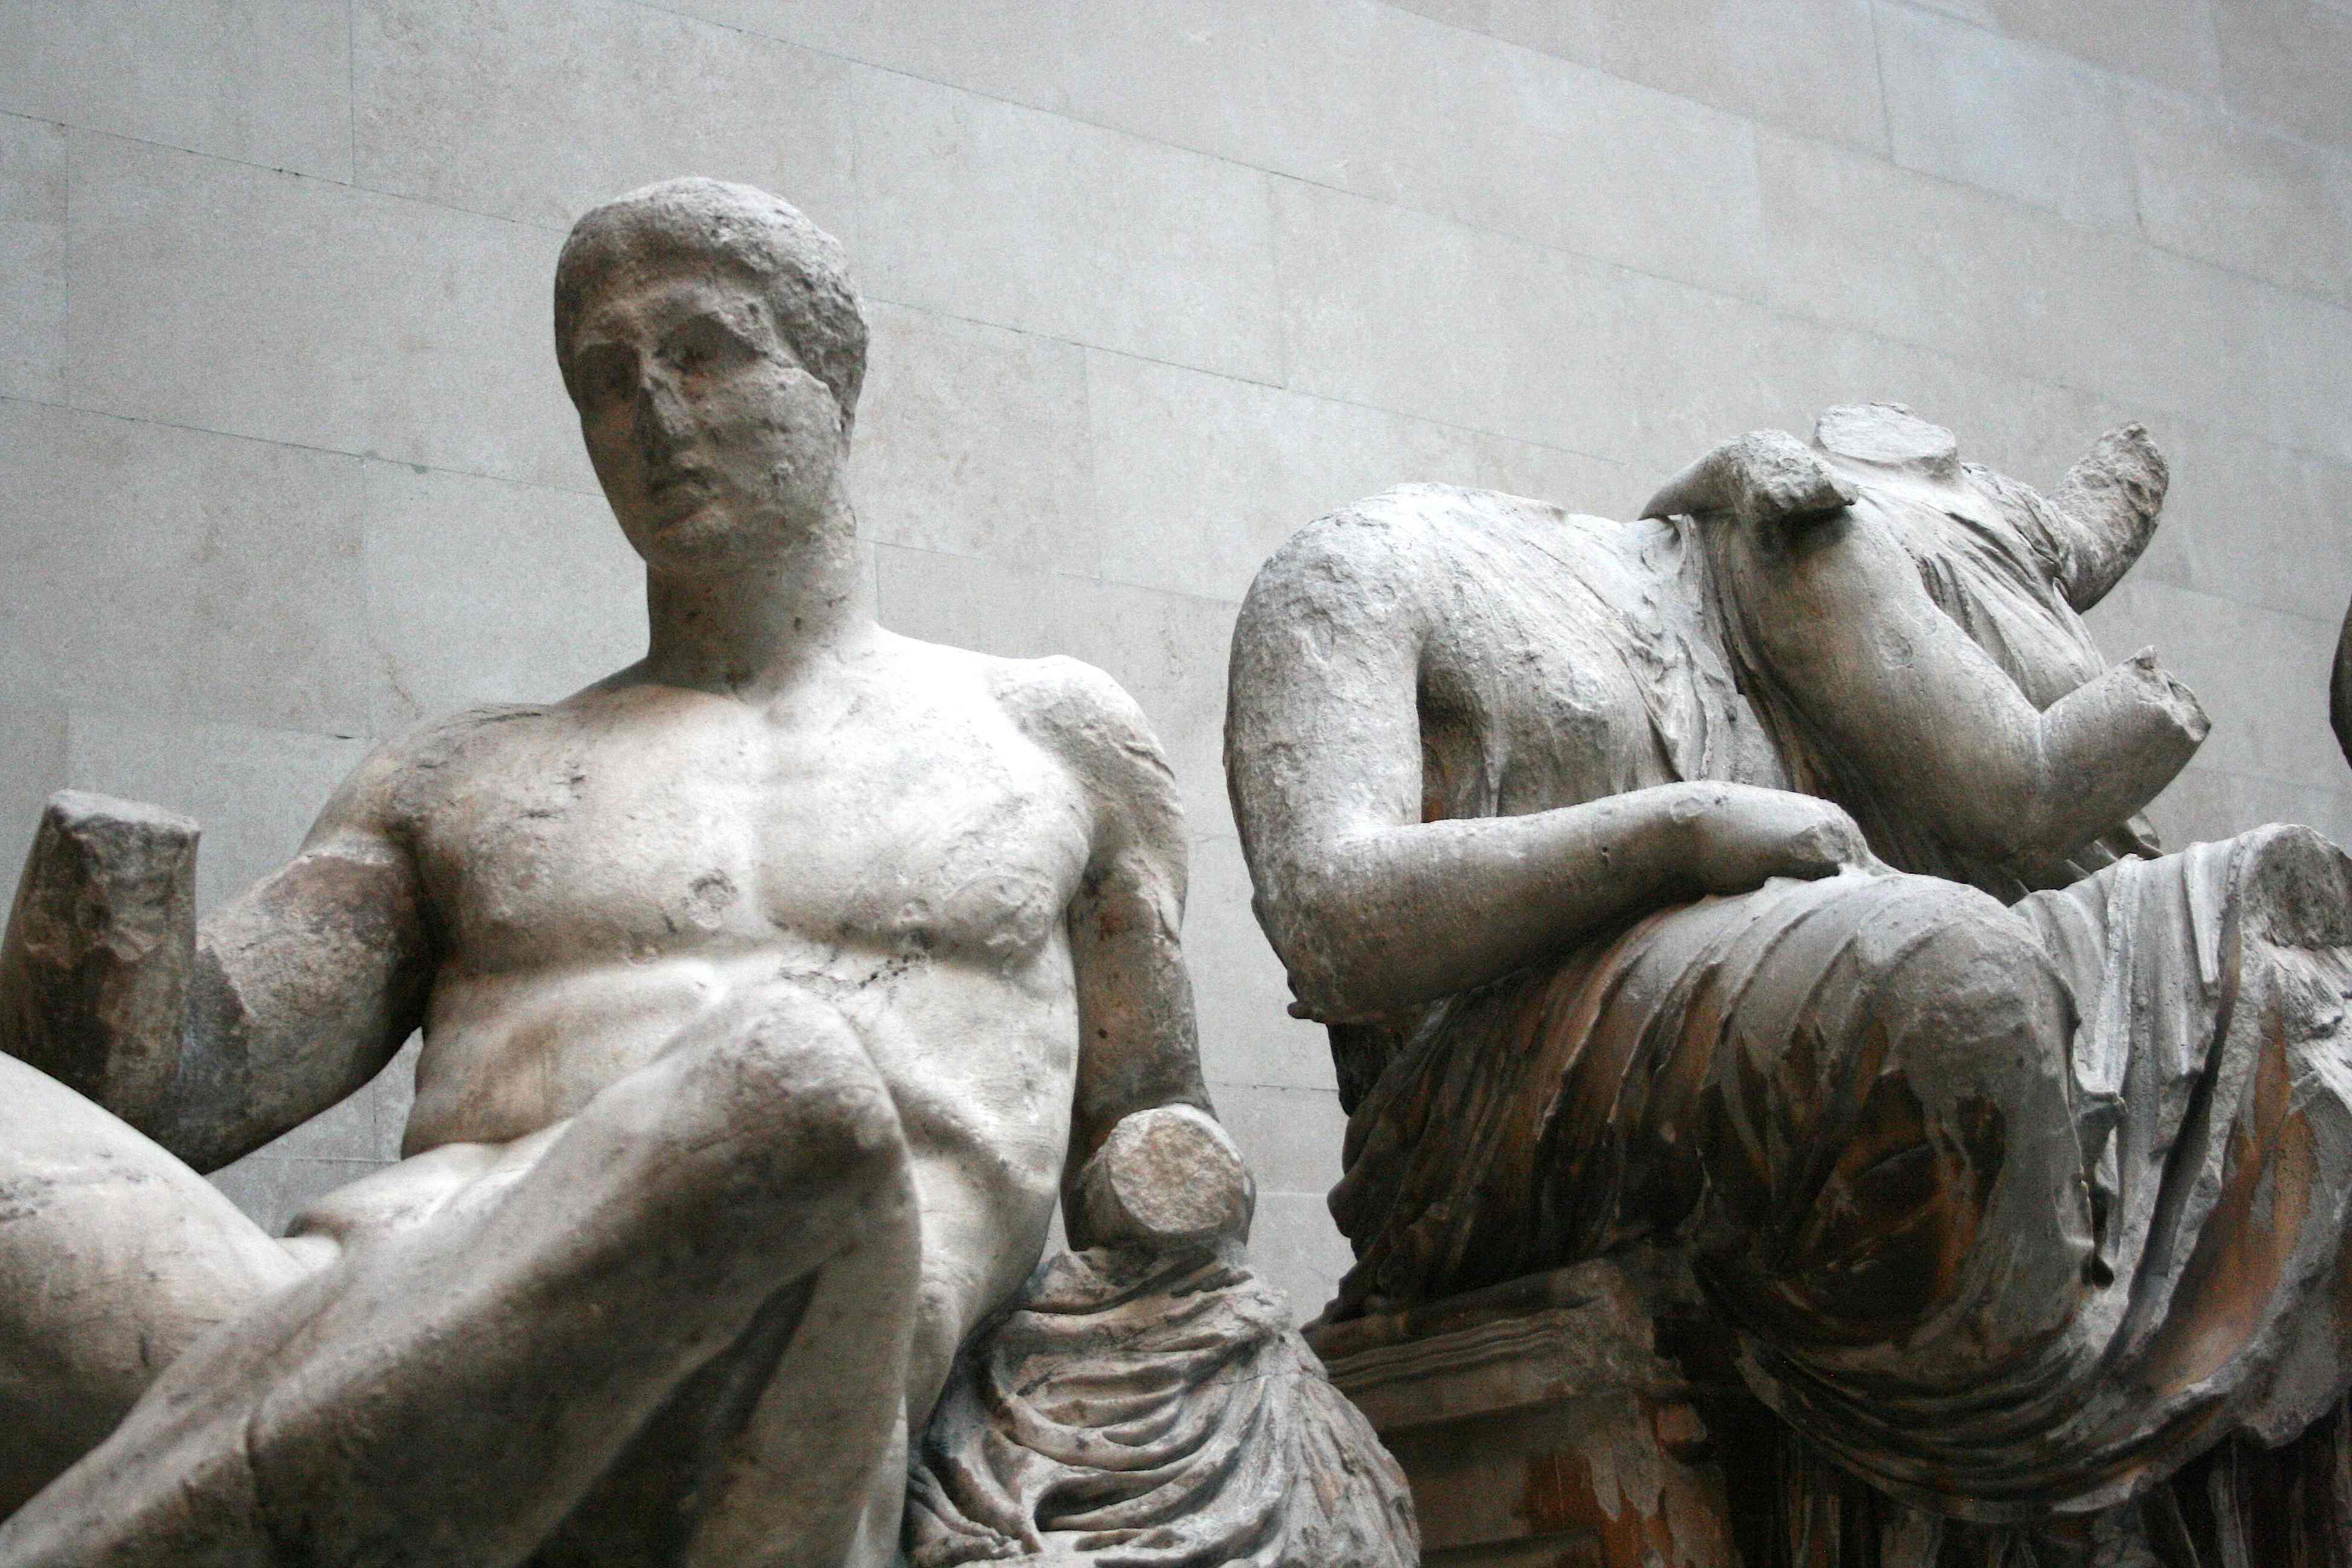 essay on the elgin marbles The elgin marbles paper instructions: using the three sources provided below, write a 3-5 page (double-spaced) research paper in apa style (inkl abstract) on the so-called elgin marbles controversy.